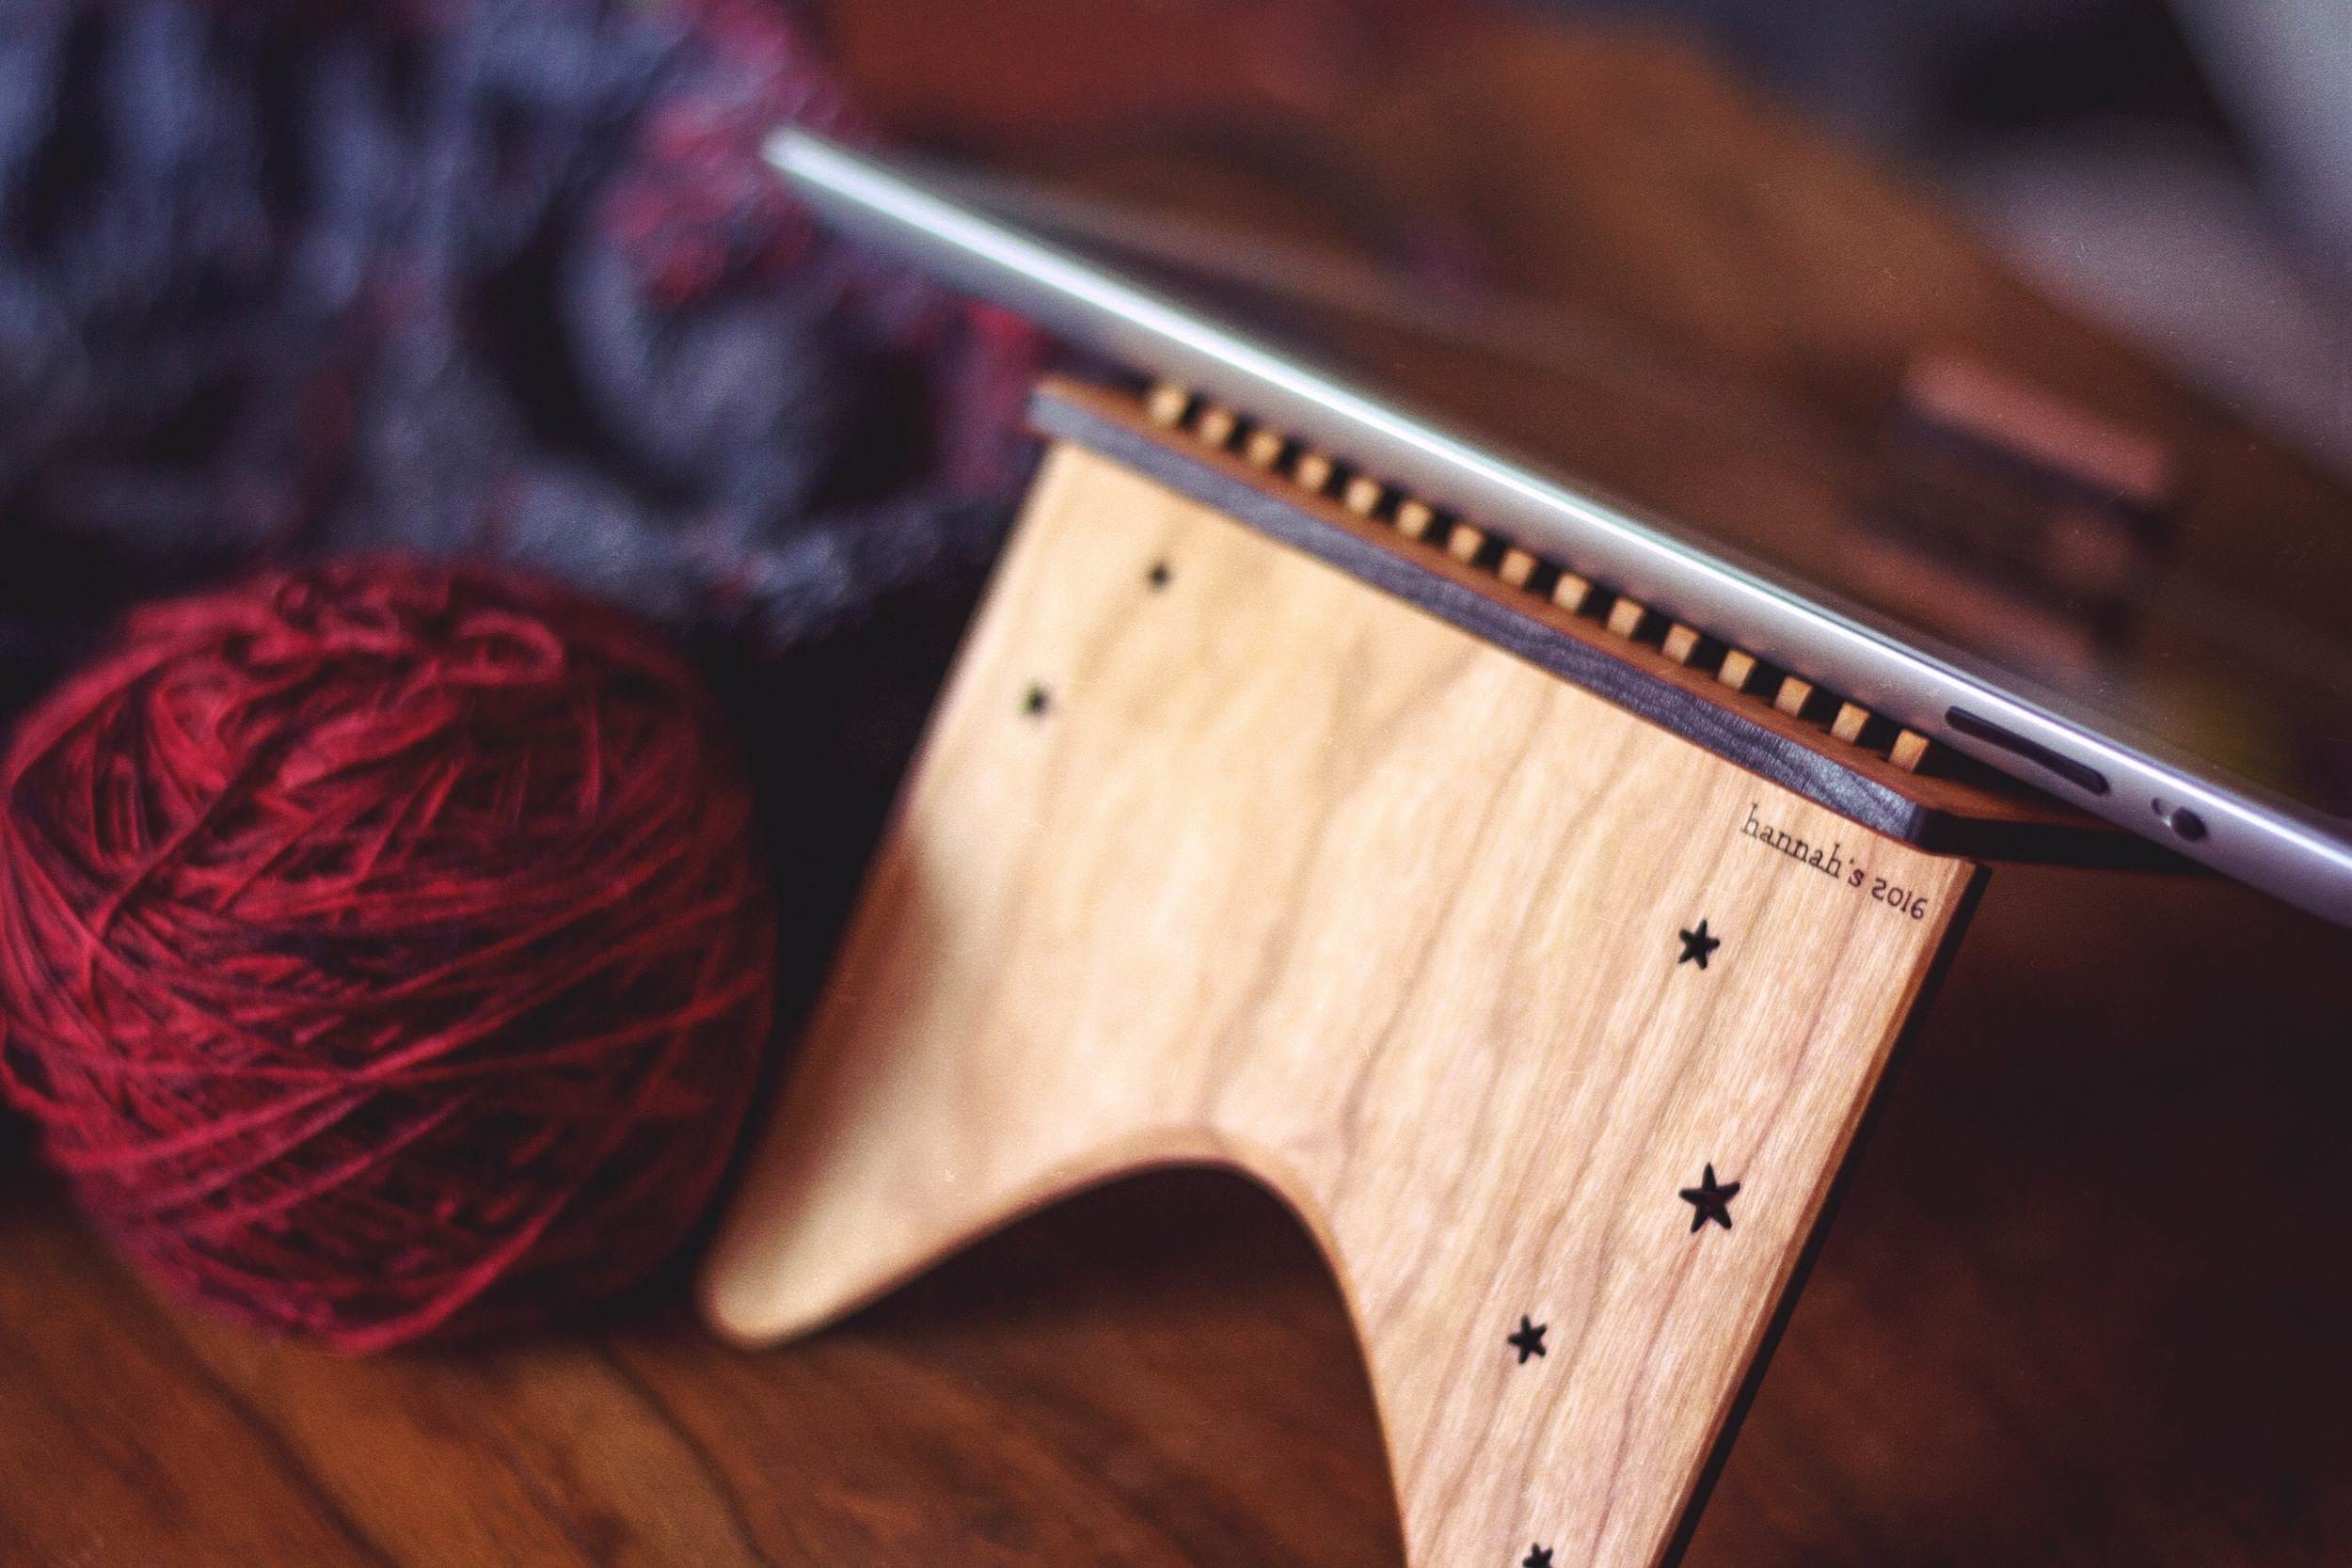 Using a Twilight iPad stand to read a knitting pattern.